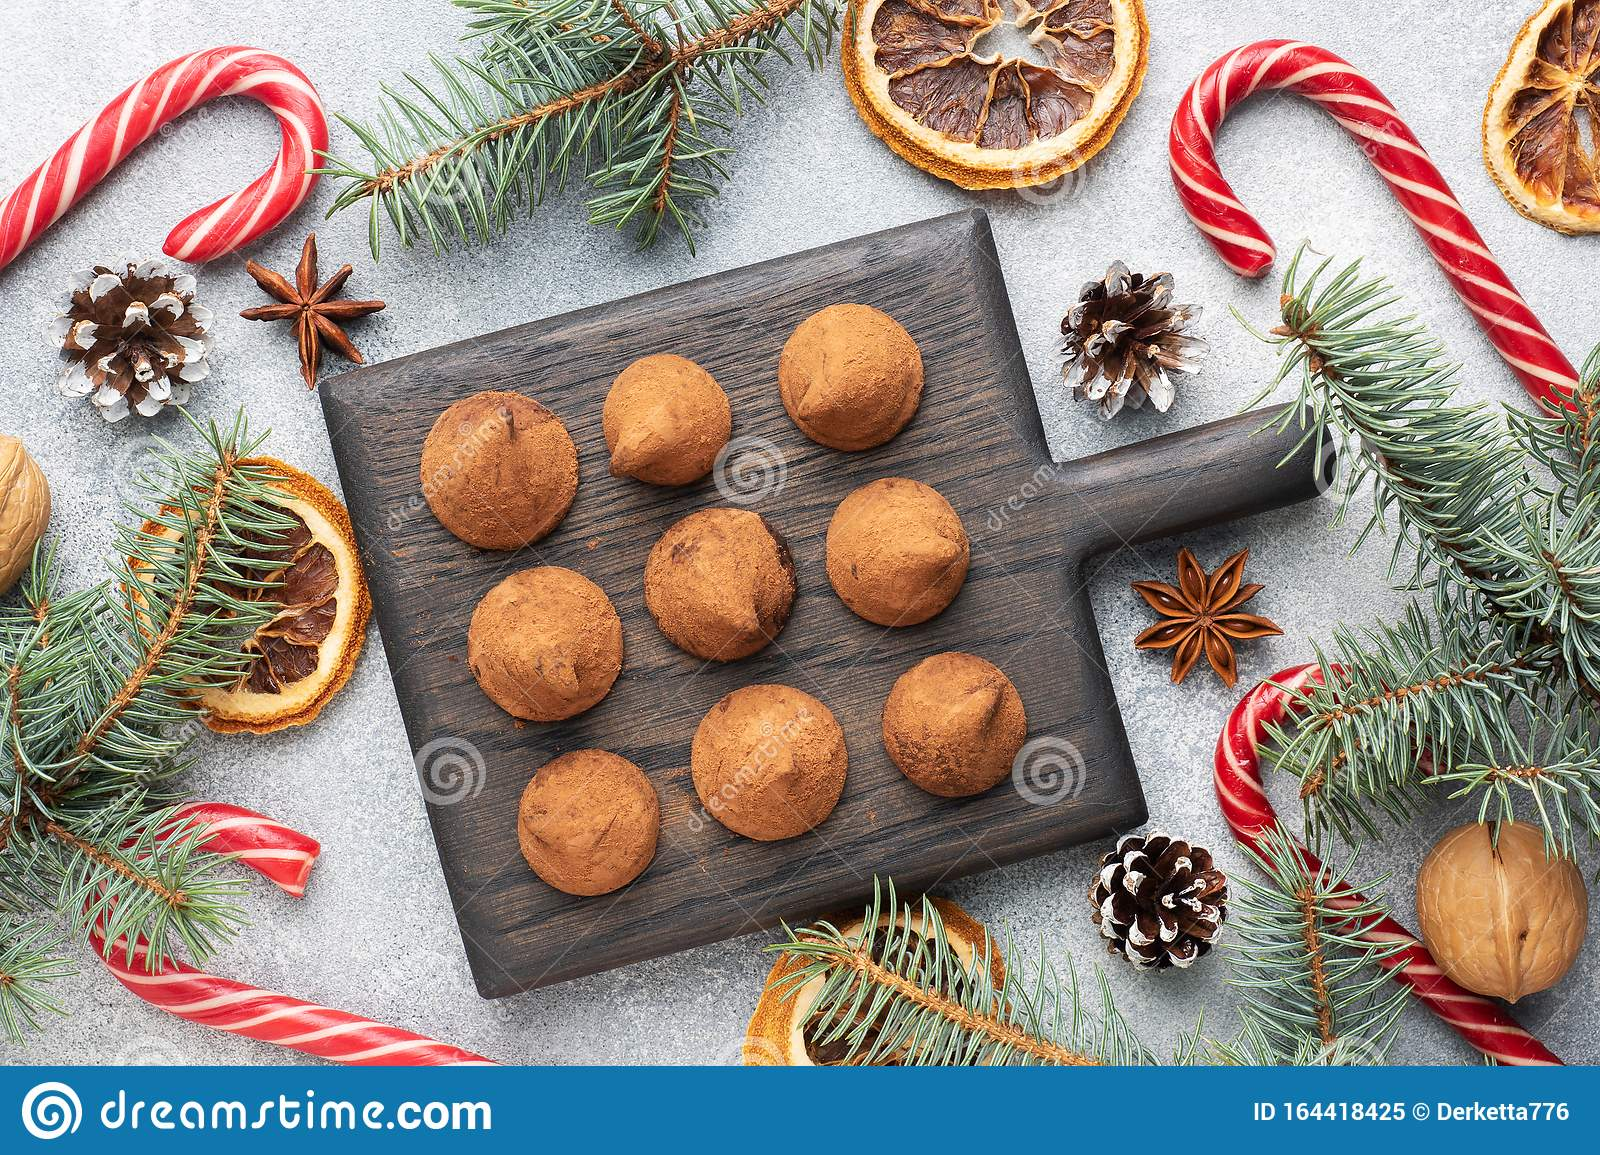 Delicious chocolate truffles sprinkled with cocoa powder on a wooden stand. Christmas tree scenery concept